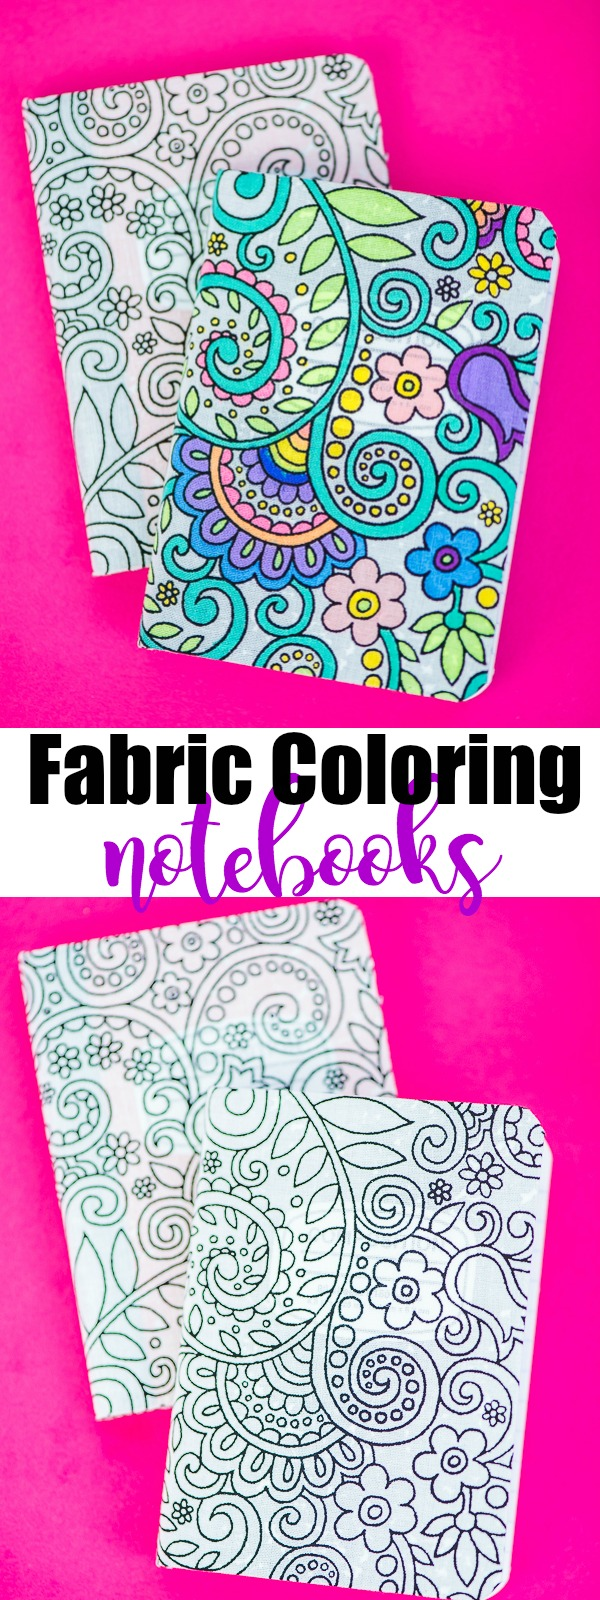 DIY Fabric Coloring Notebook made with adhesive fabric sheets and fabric markers.